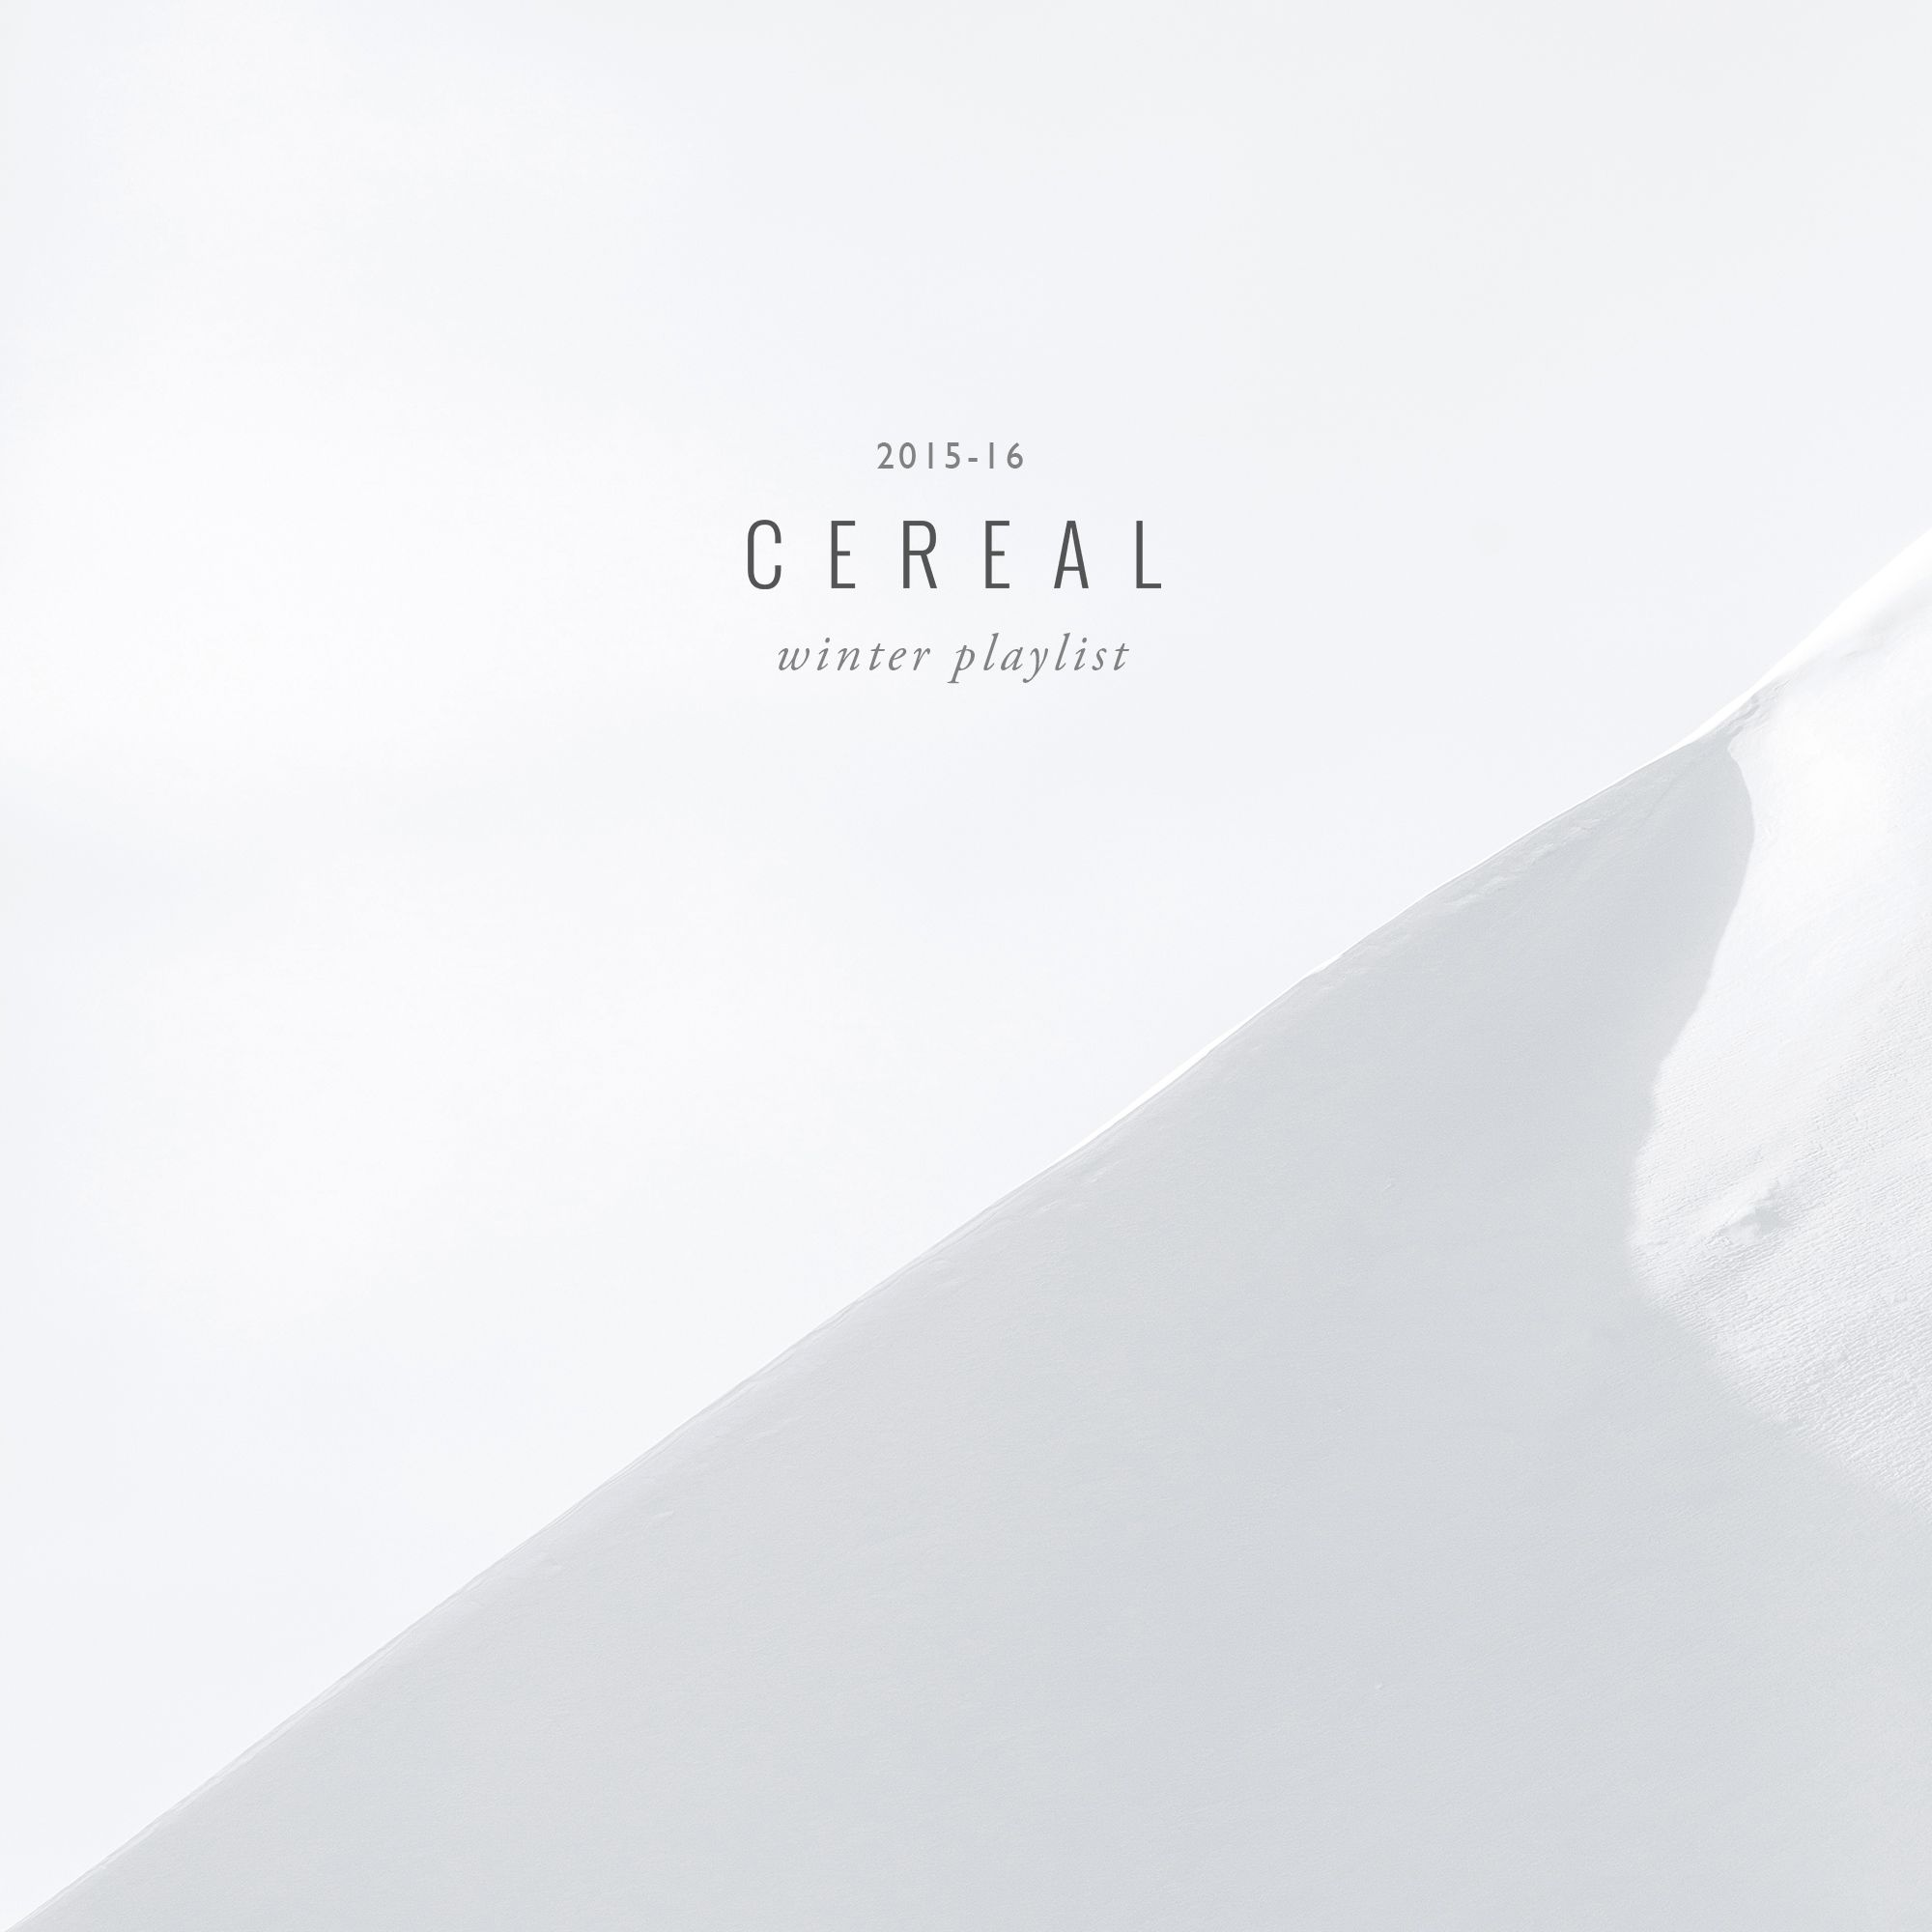 CEREAL MAGAZINE WINTER PLAYLIST | Editorial | Pinterest | Cereal ...